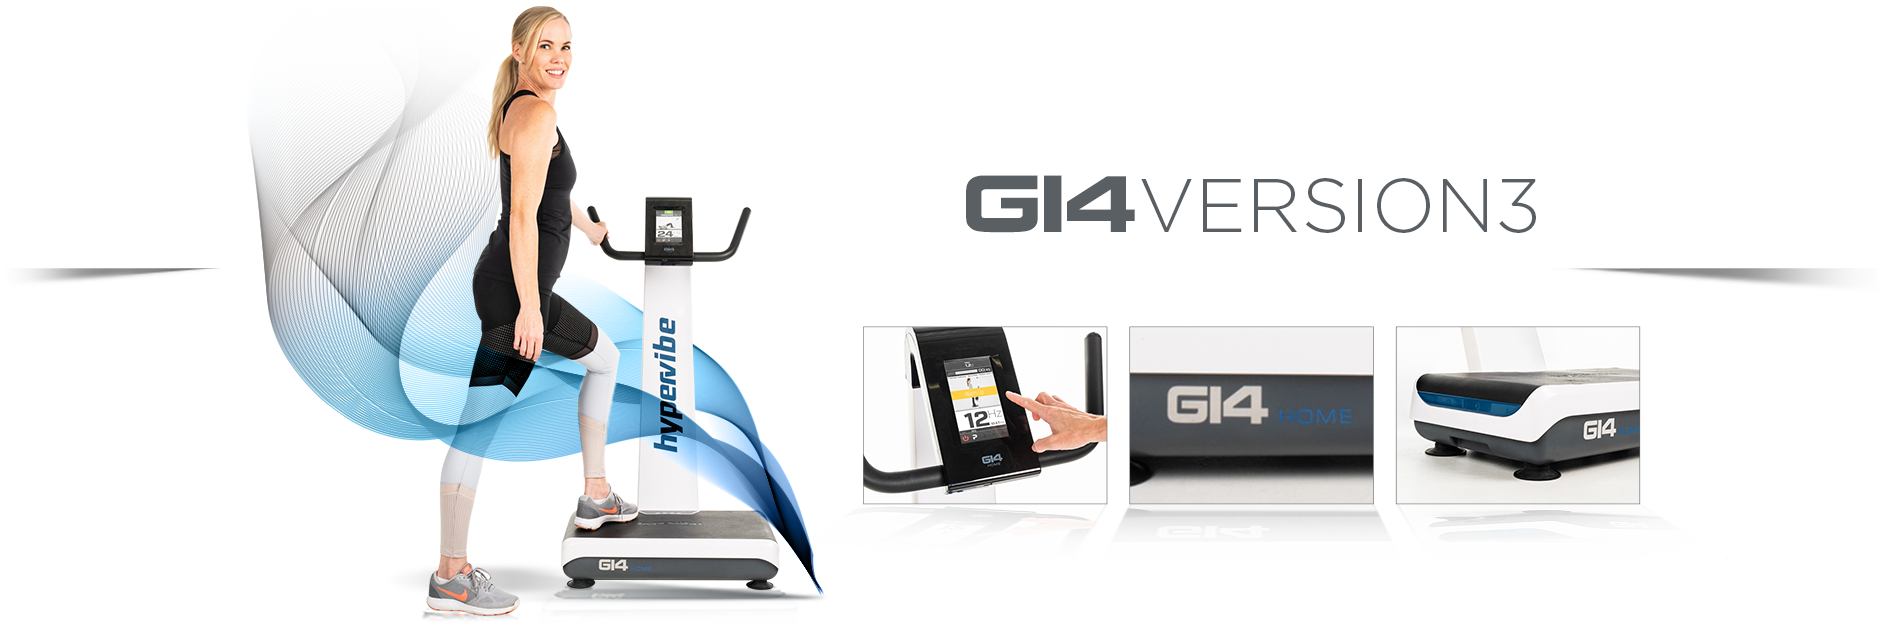 hypervibe g14 version 3